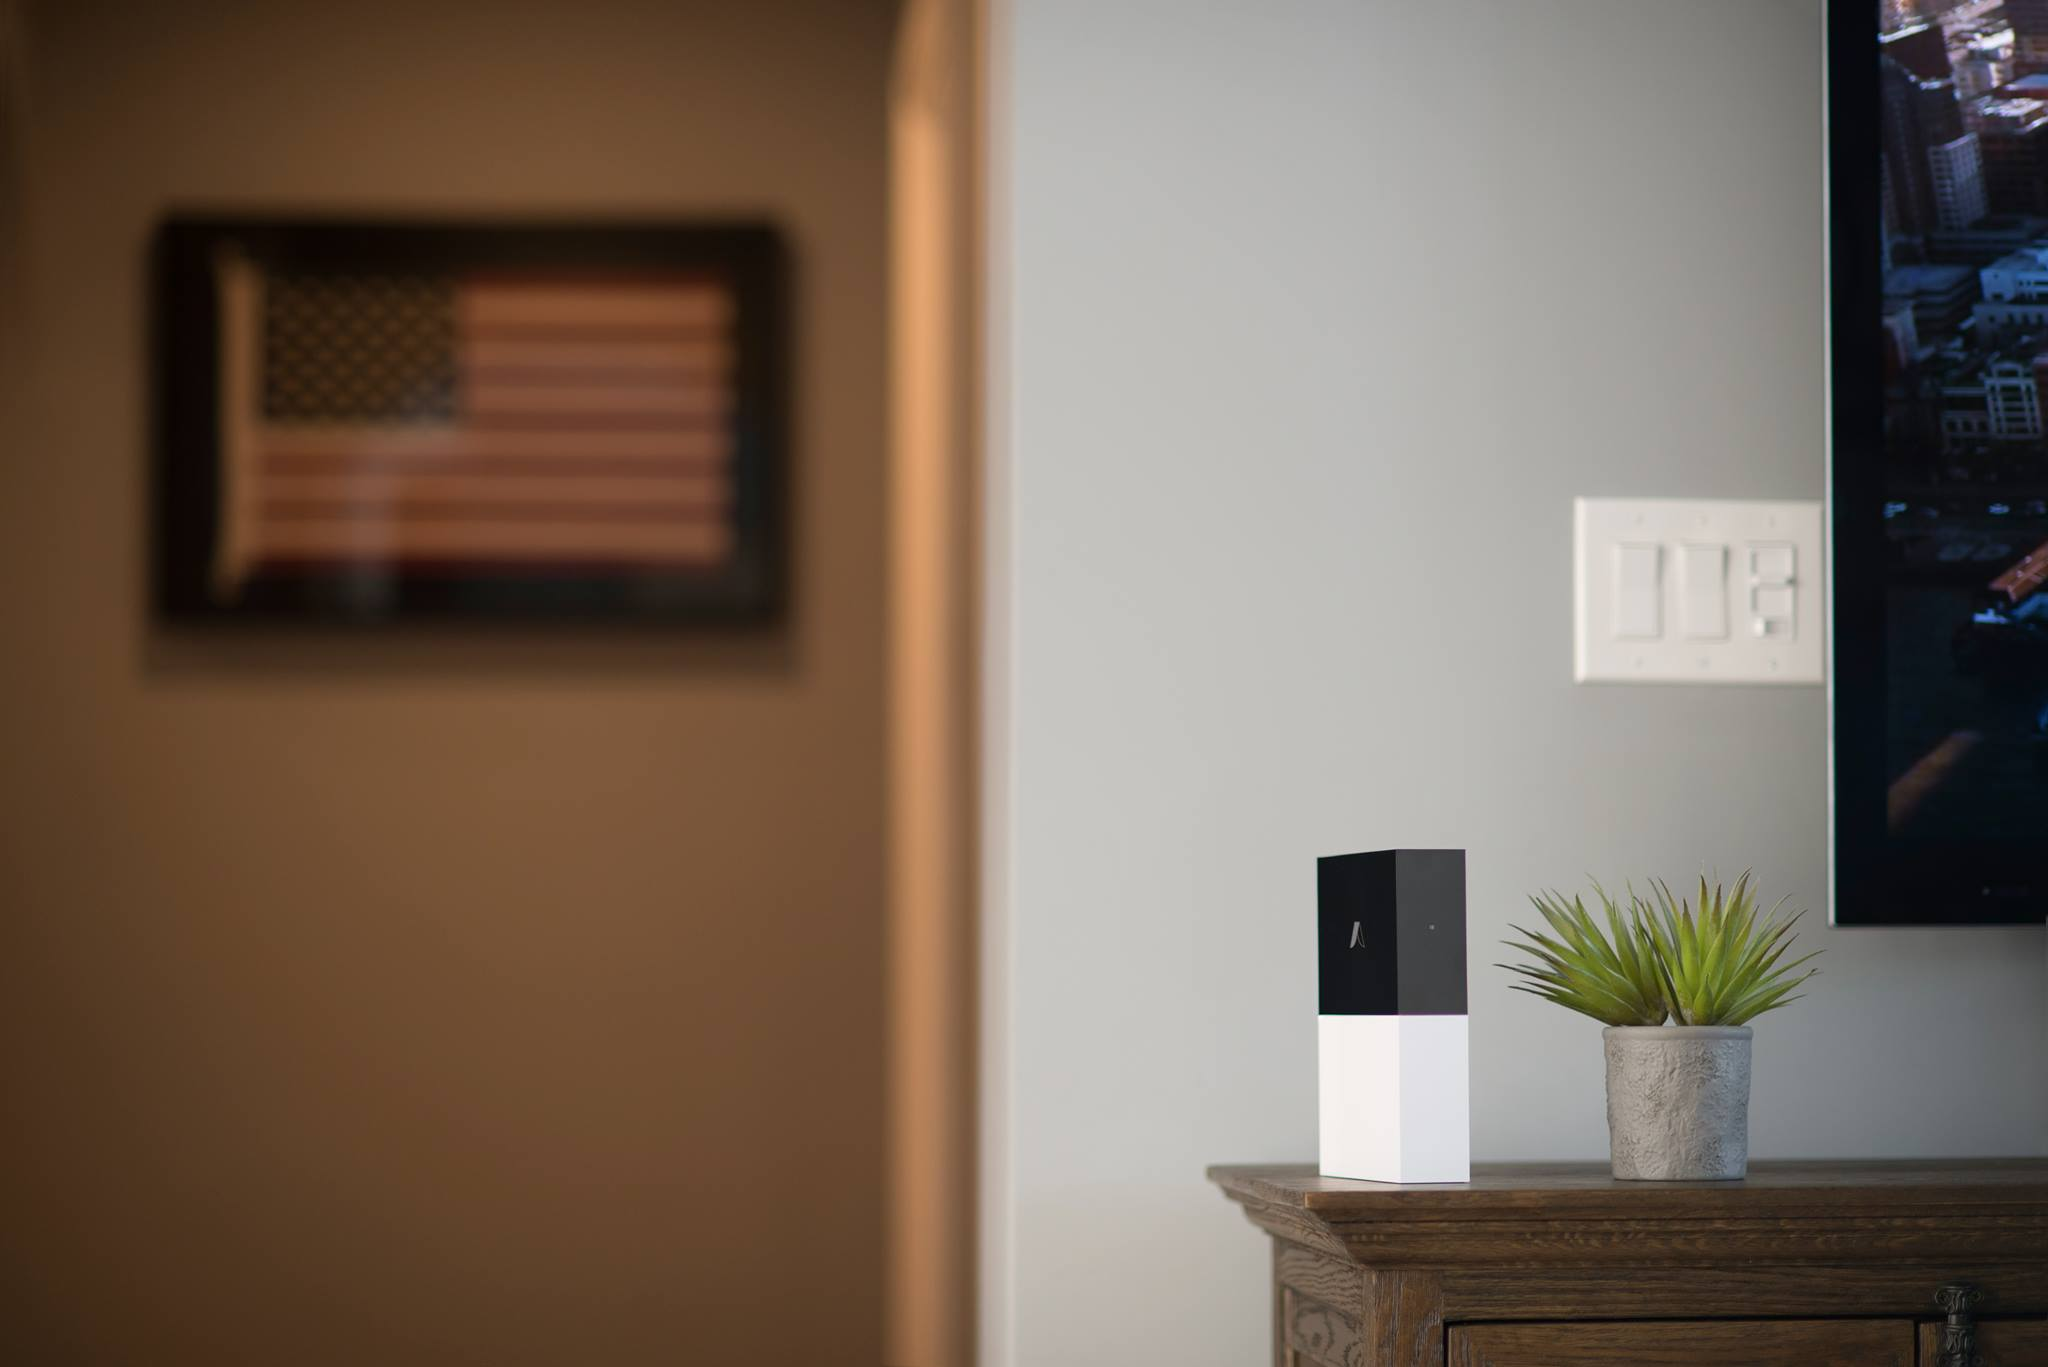 The Abode Starter Kit Is Alexa Compatible DIY Security Solution For Home